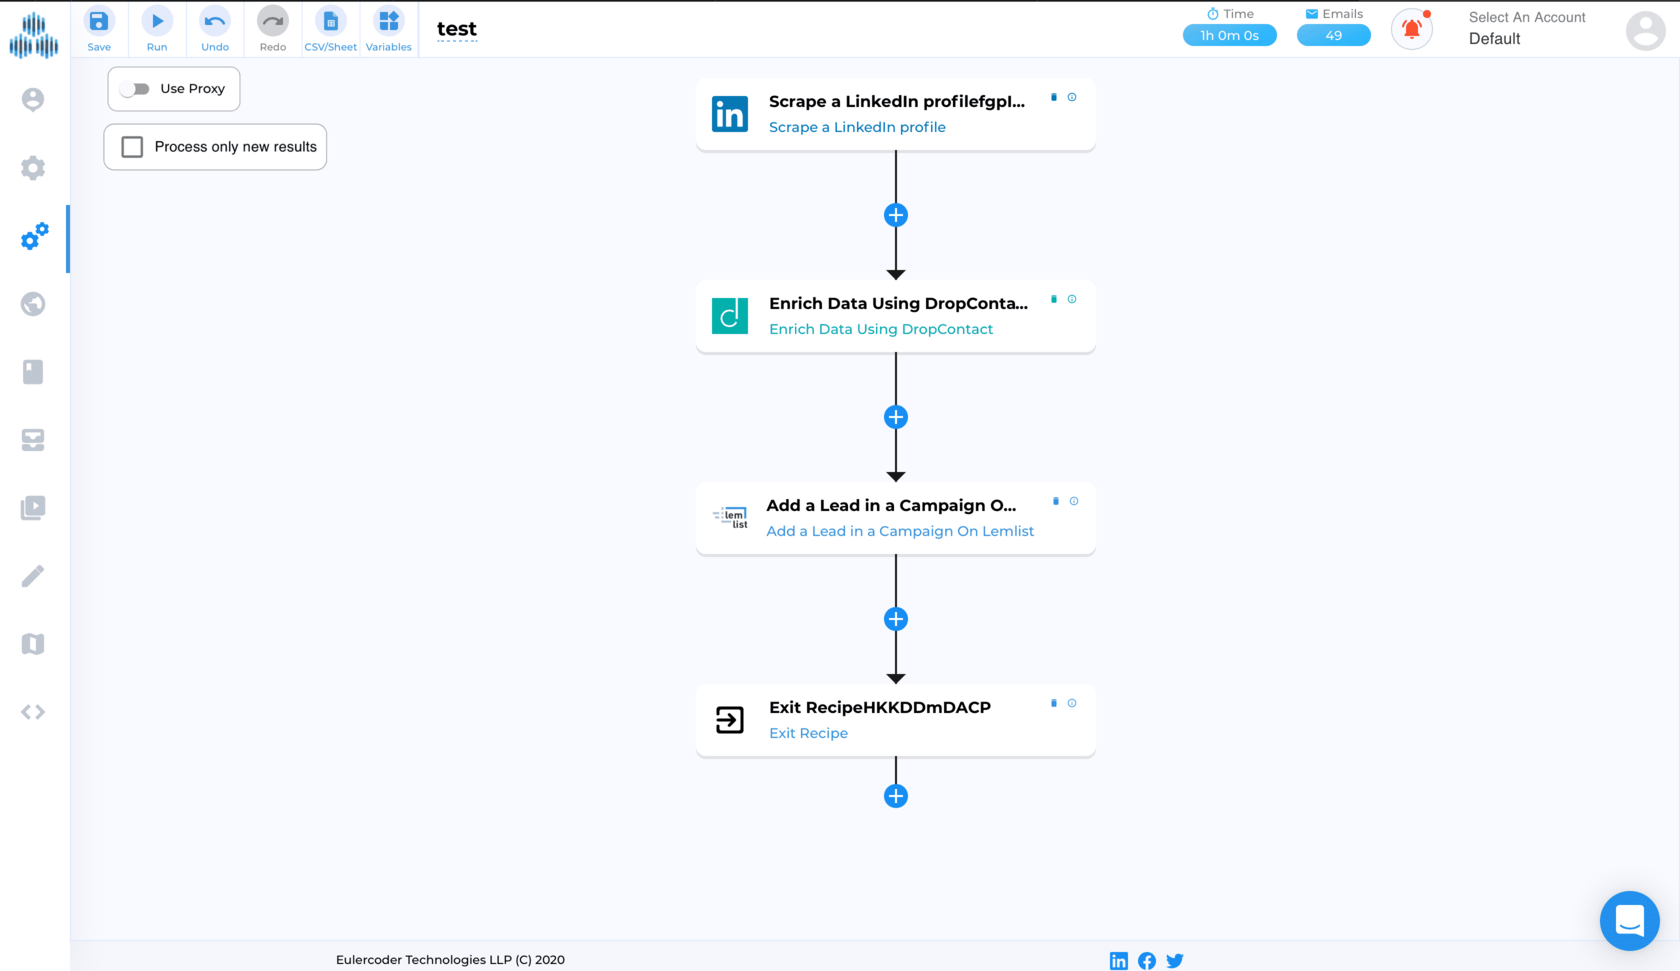 TexAu - LinkedIn automation et multi canal : Cold Email